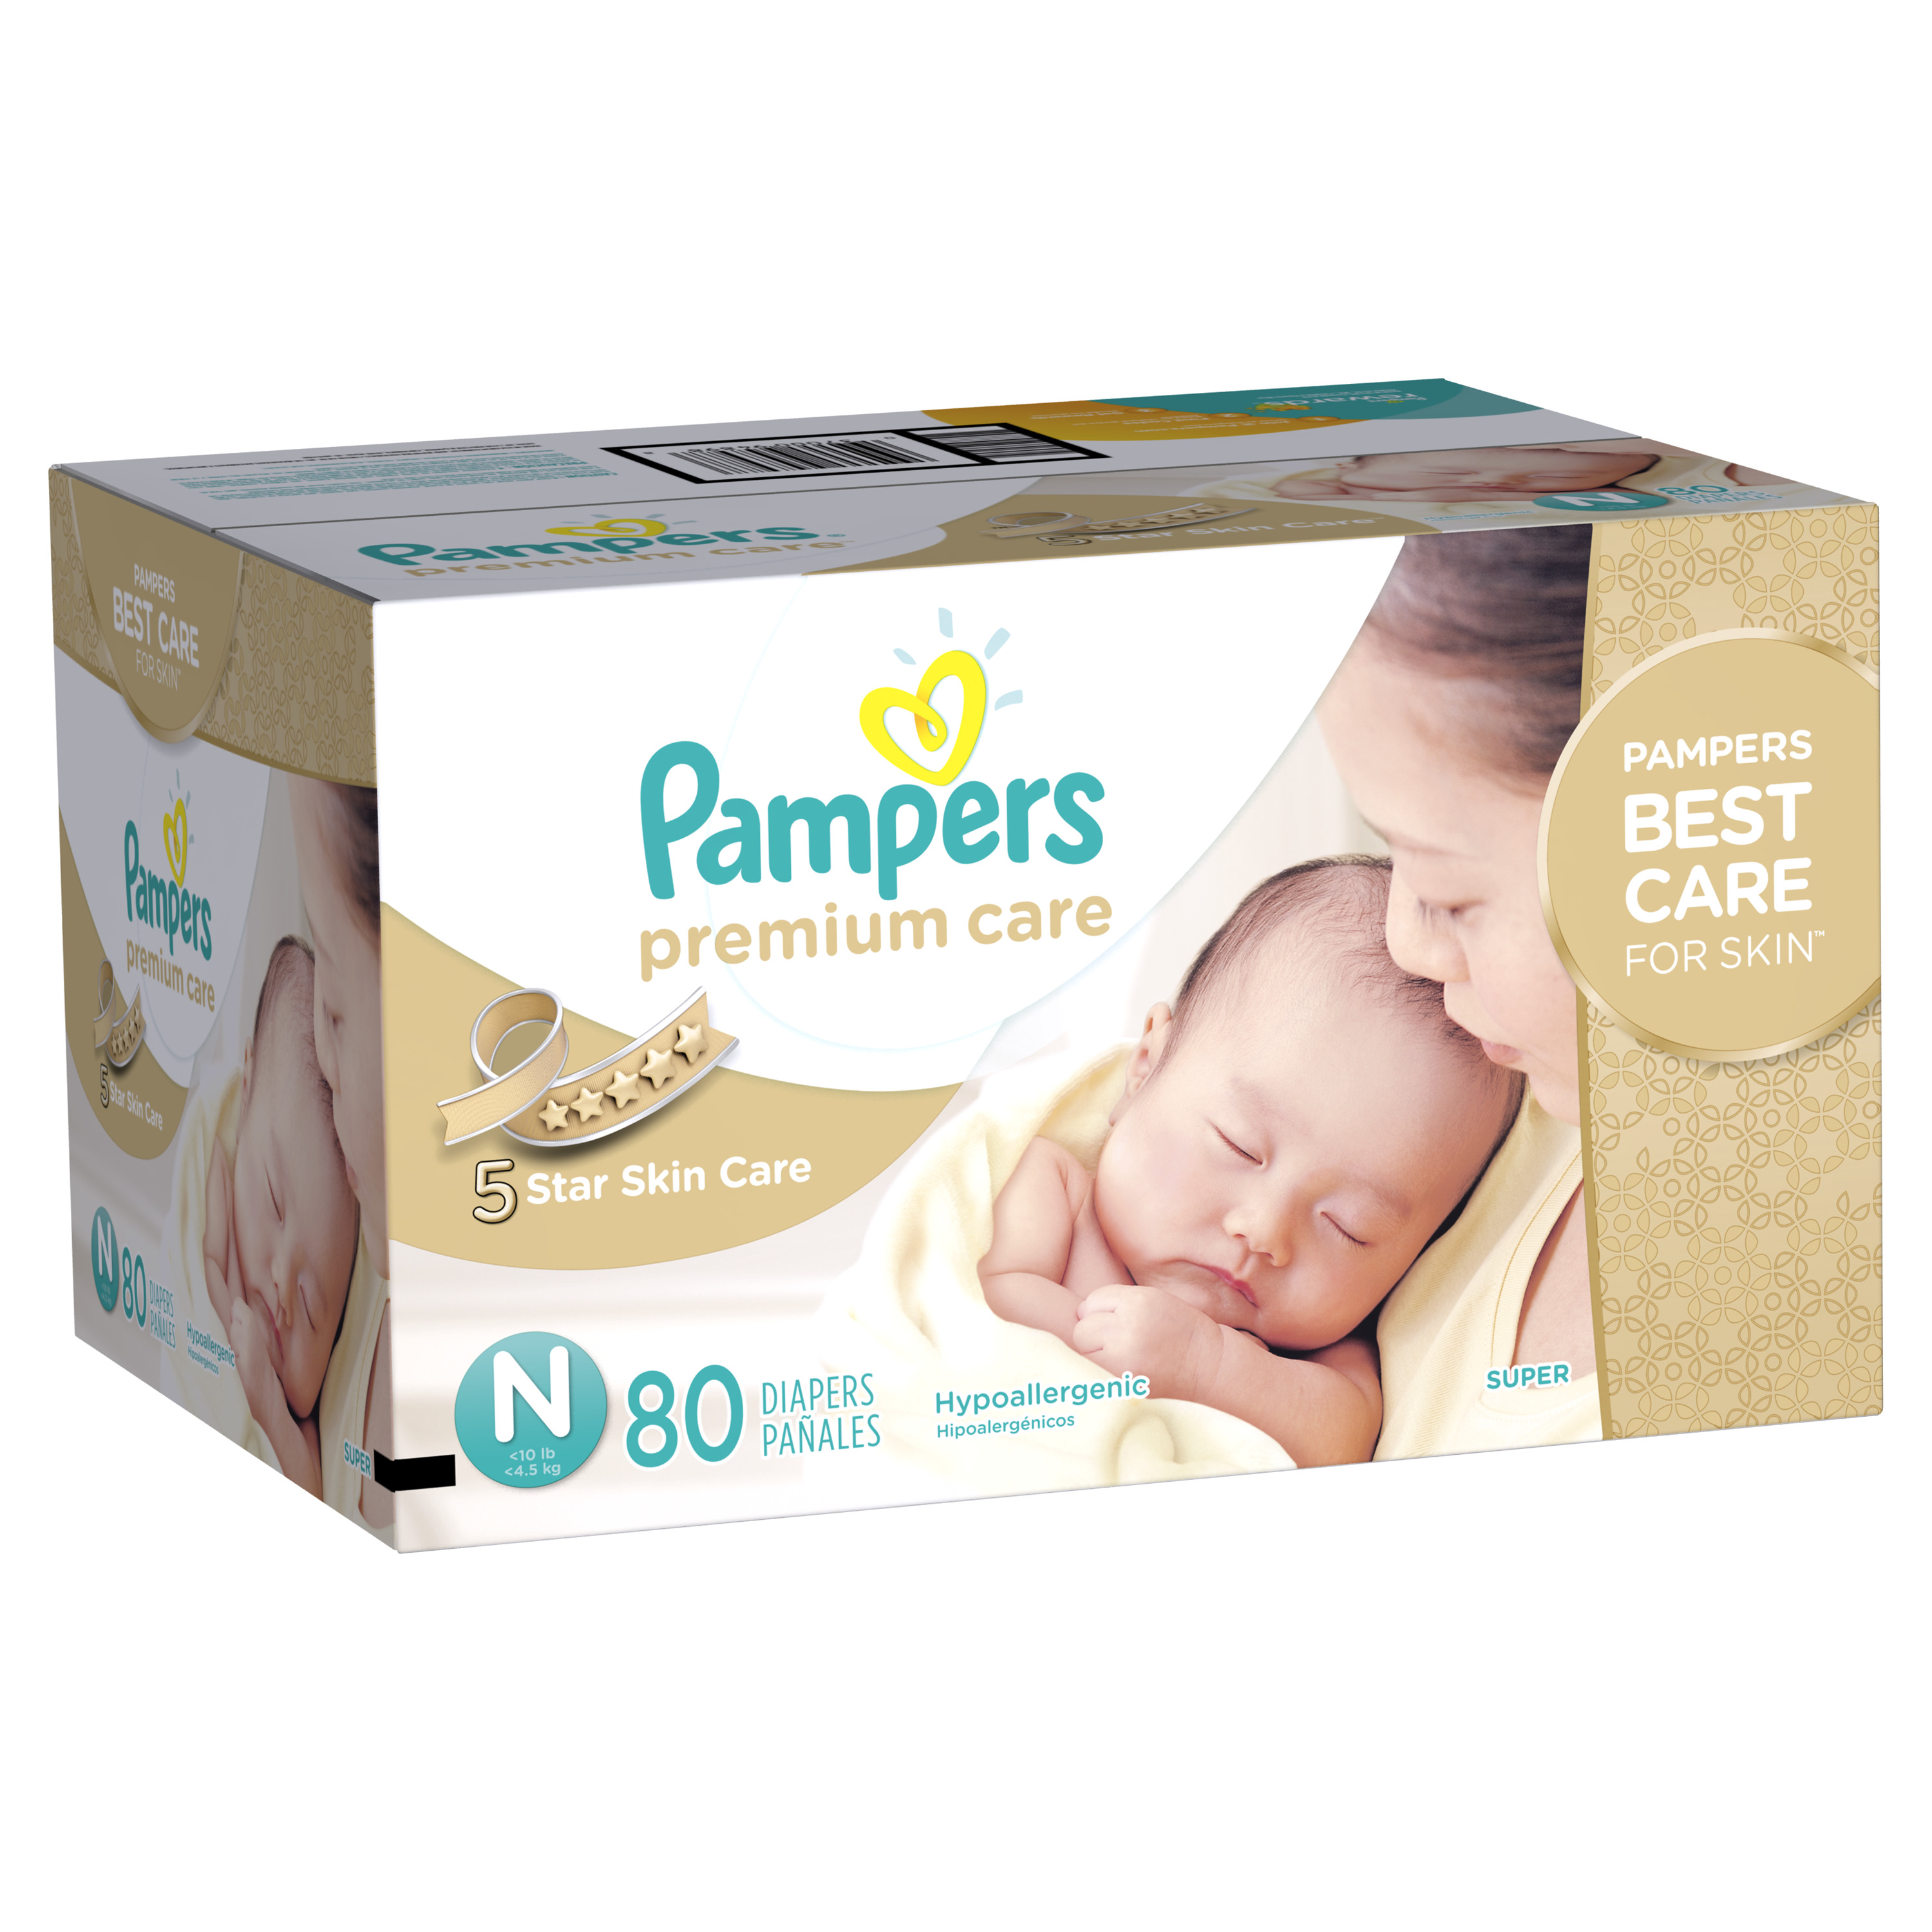 Pampers Premium Care Newborn Diapers Size N, 80 Diapers